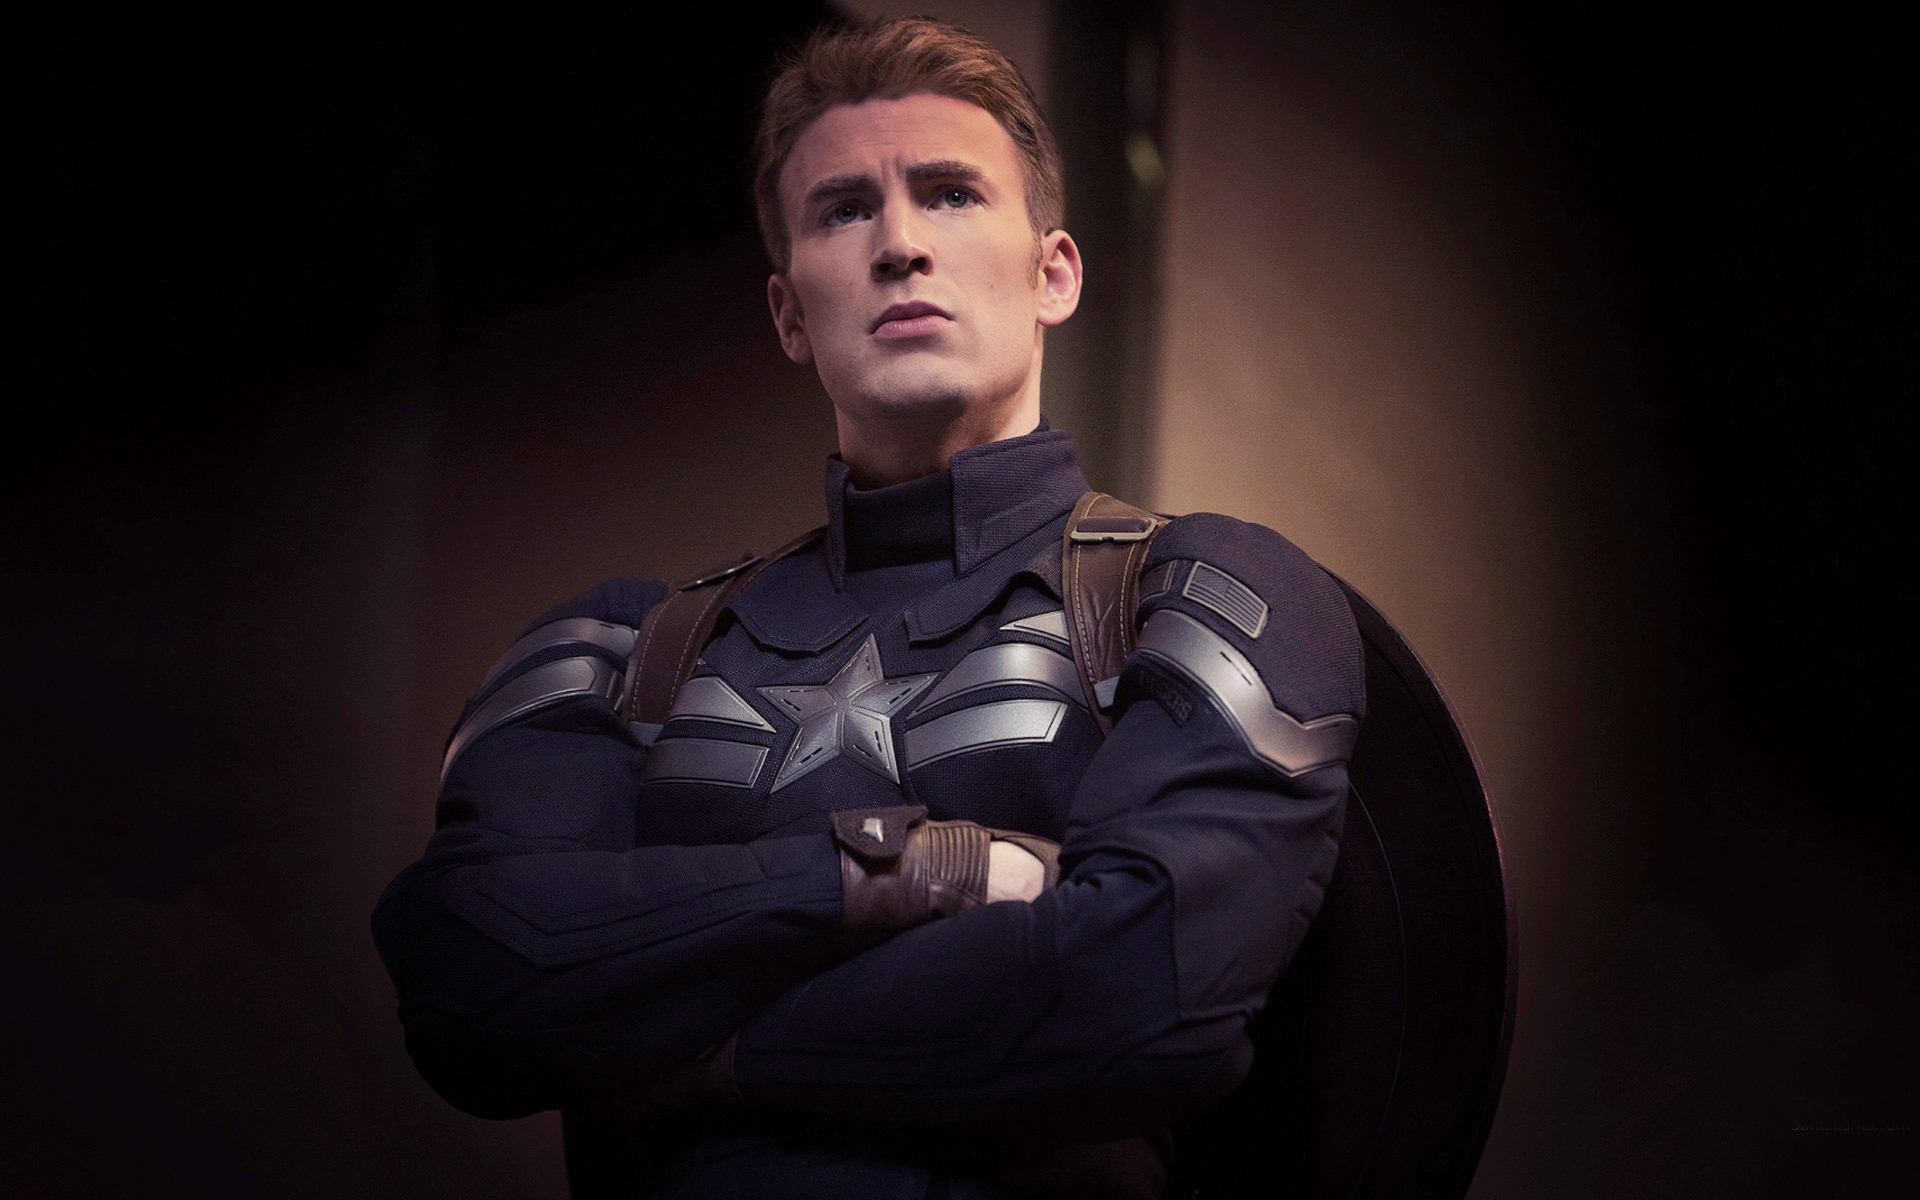 chris evans actor wallpaper 51888